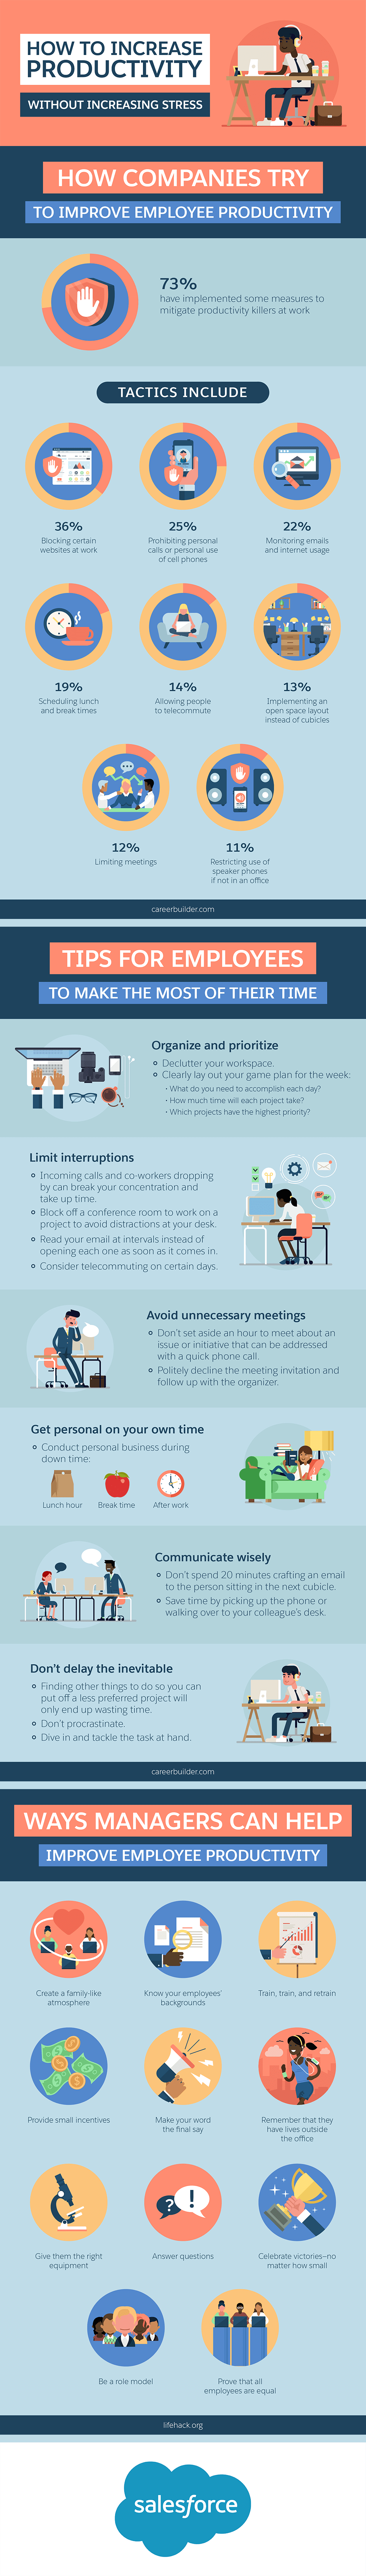 Top tips to staying stress free in the workplace infographic - How To Increase Productivity Without Increasing Stress Infographic